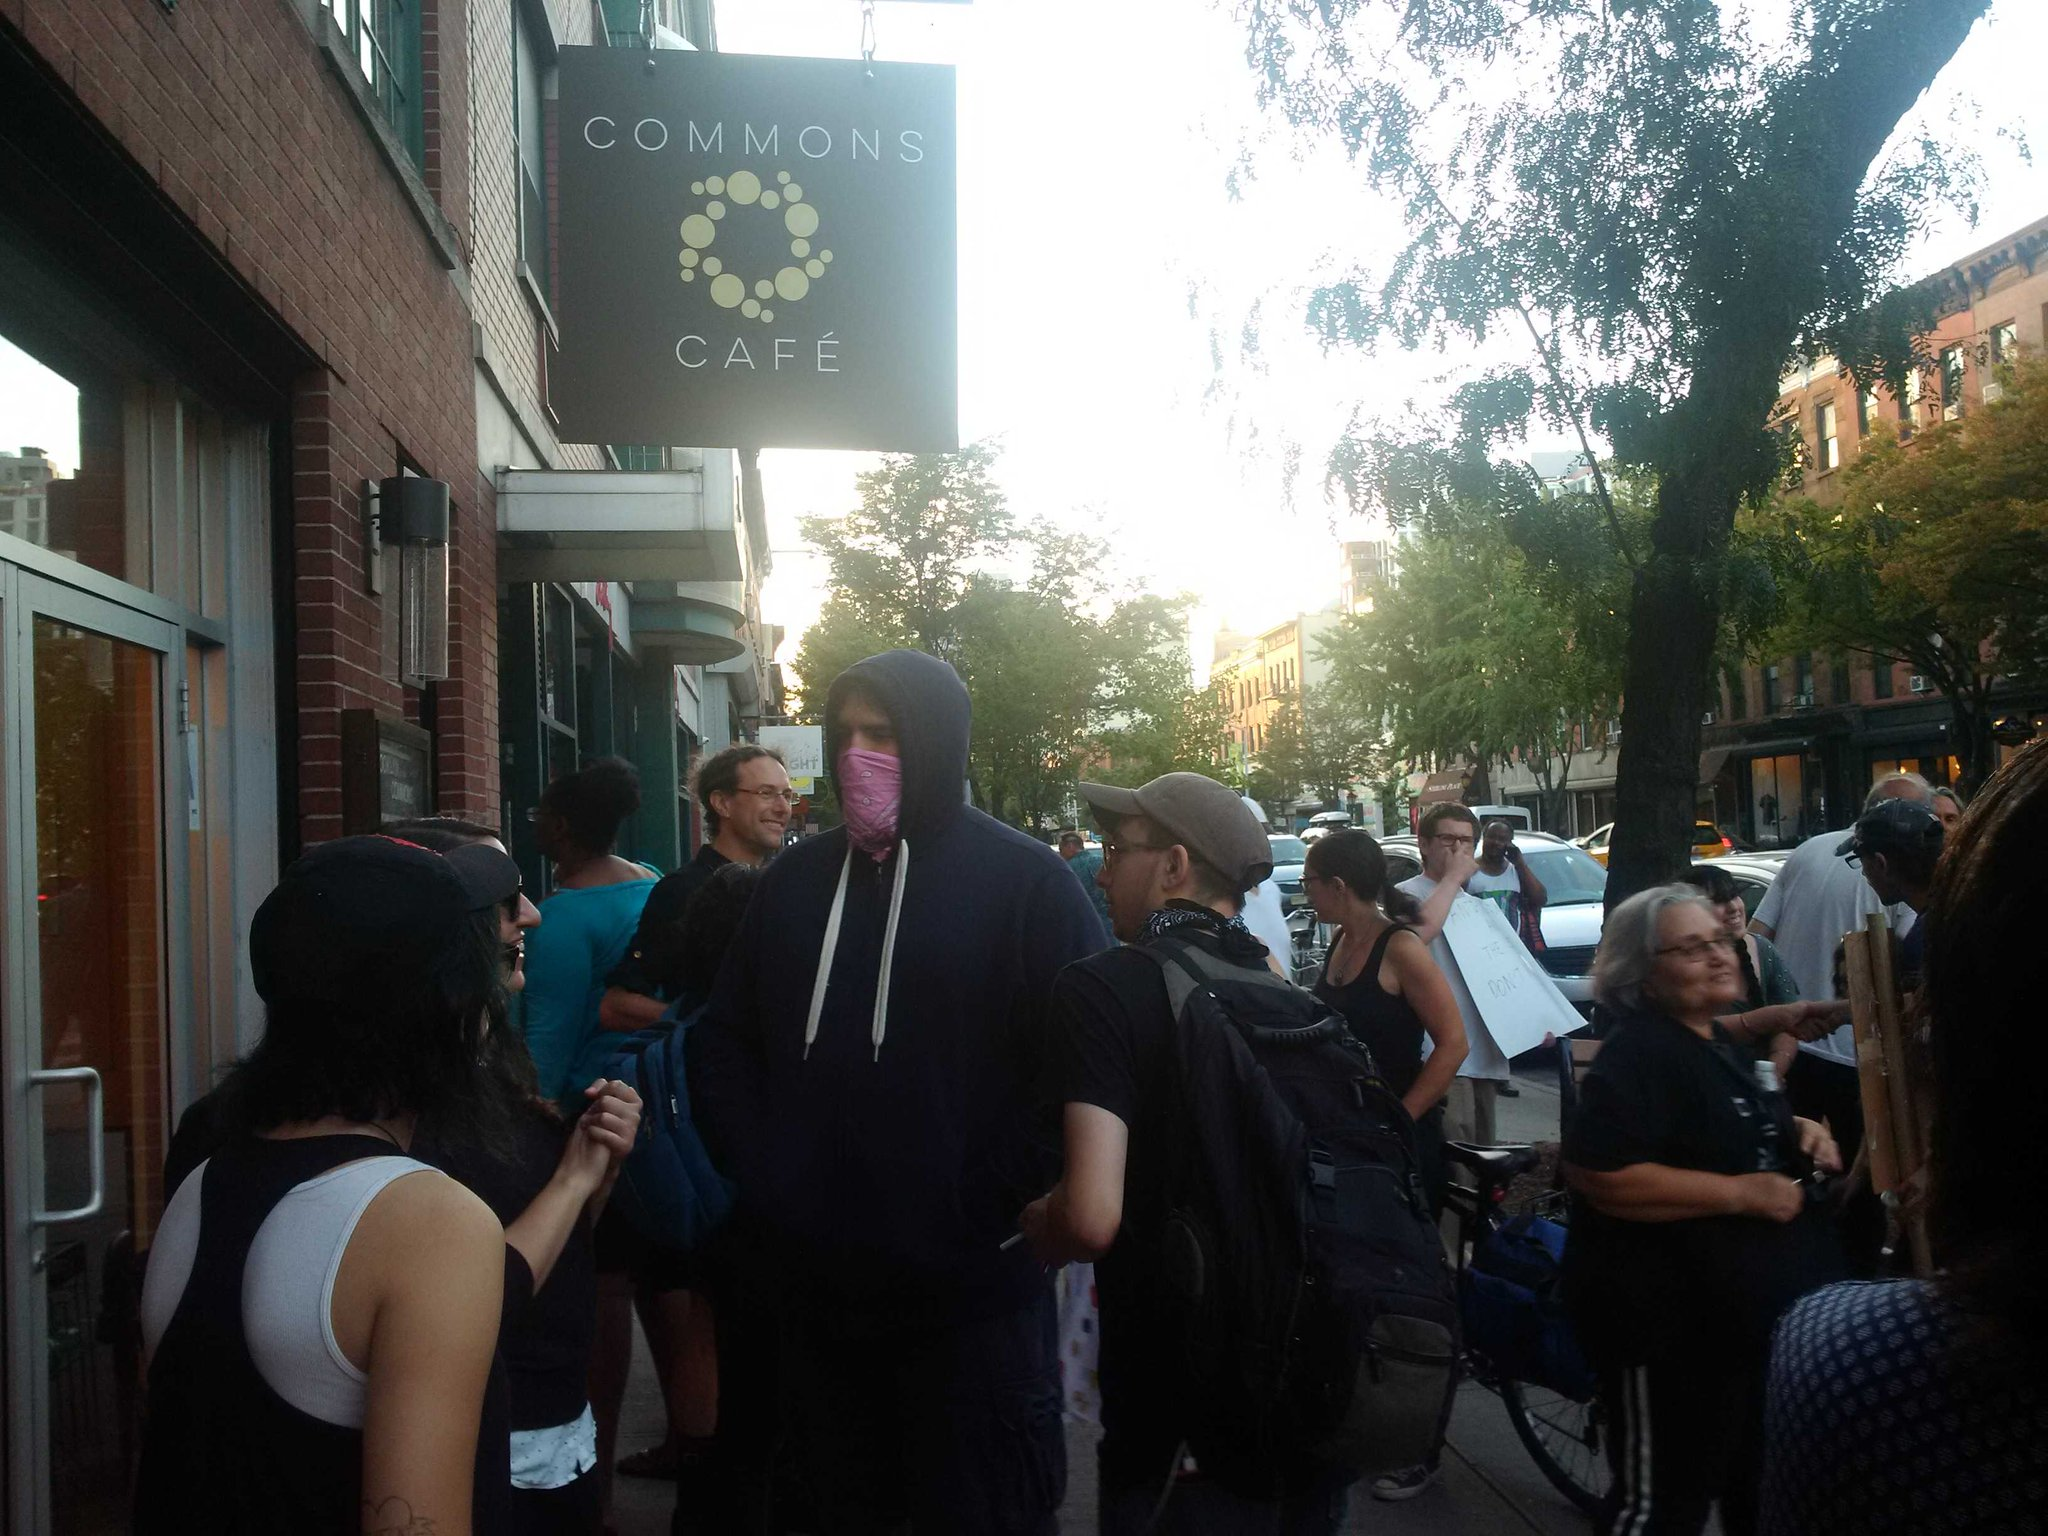 Protests outside the Brooklyn Commons for talk with Christopher Bollyn on Israel's role in 911 https://t.co/T8wwo99lY0